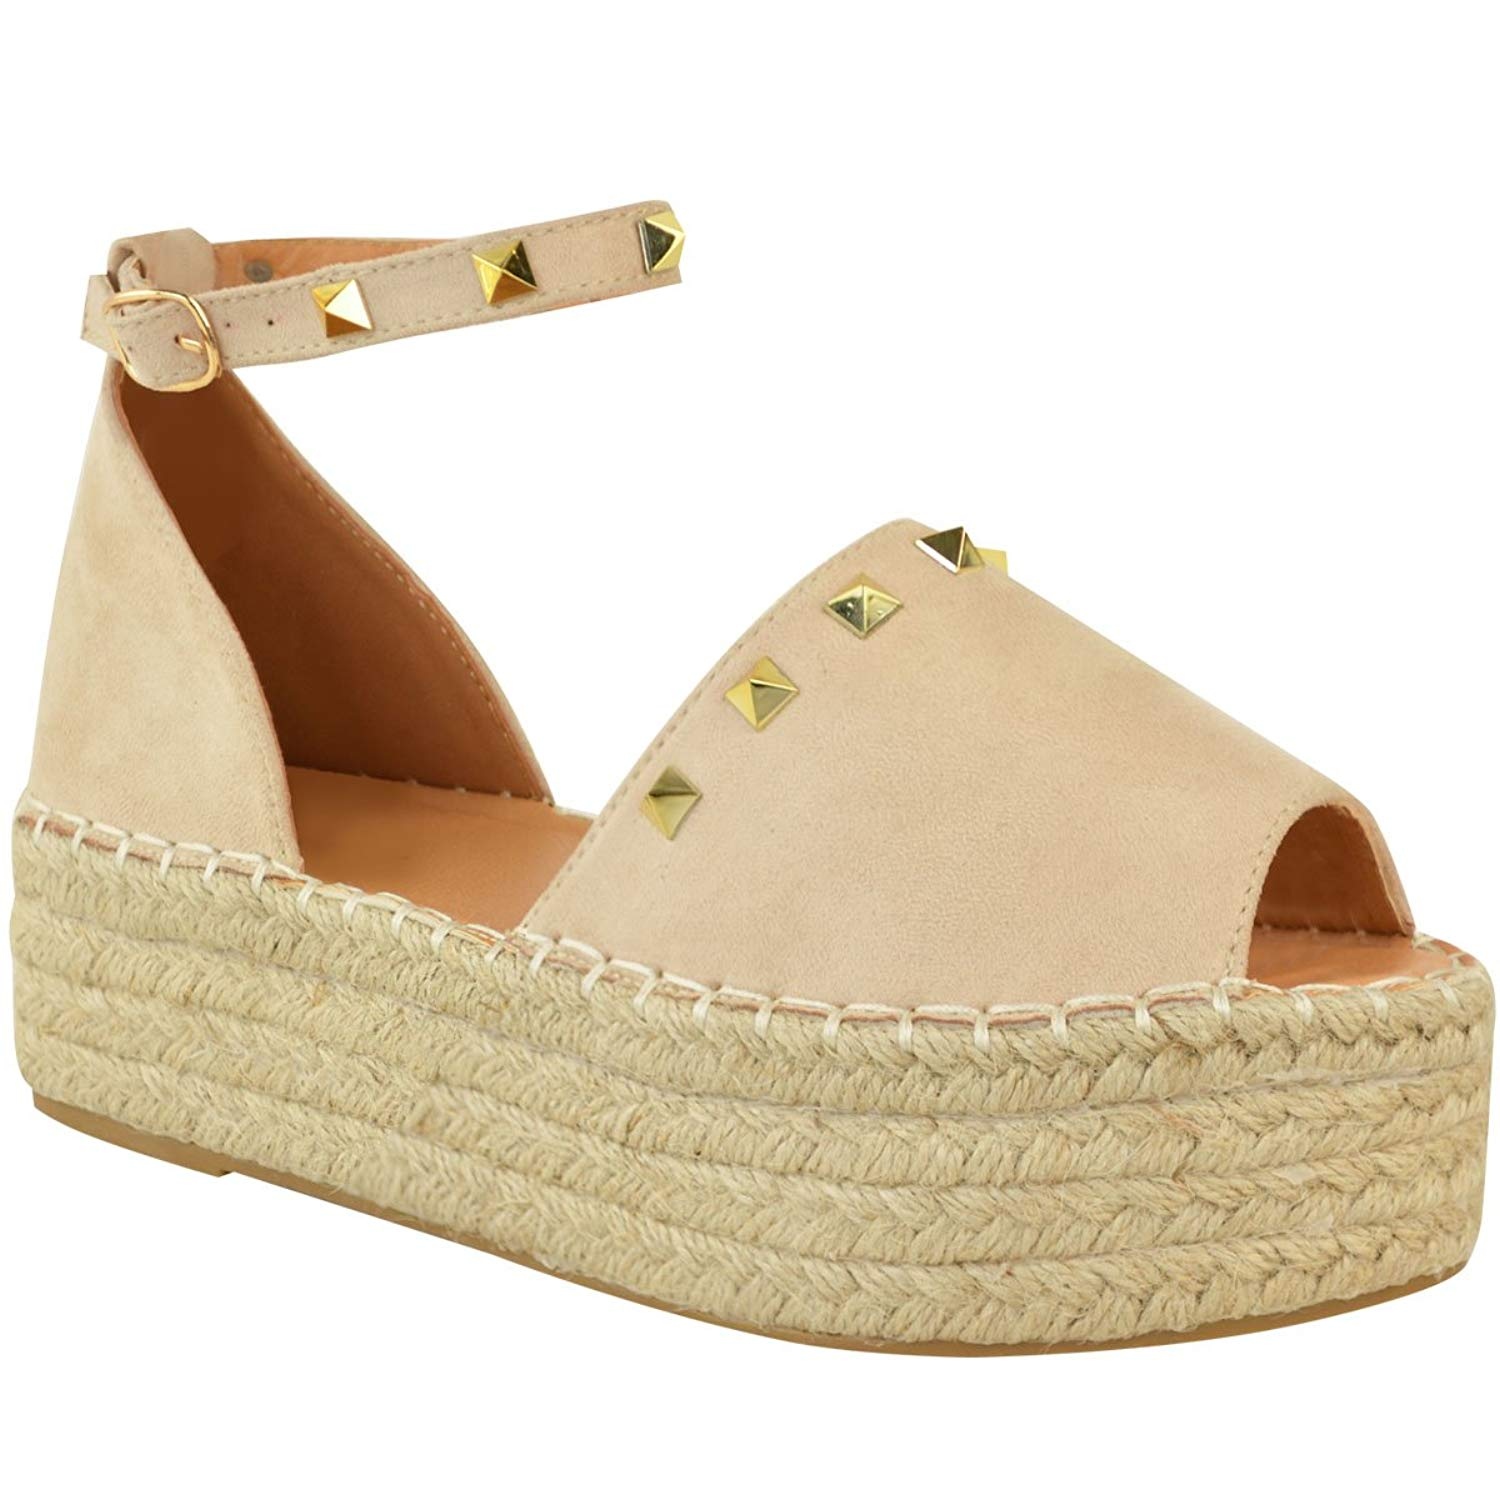 fde473e88f8c Get Quotations · Fashion Thirsty Womens Flatforms Sandals Studded Summer  Espadrille Platforms Shoes Size